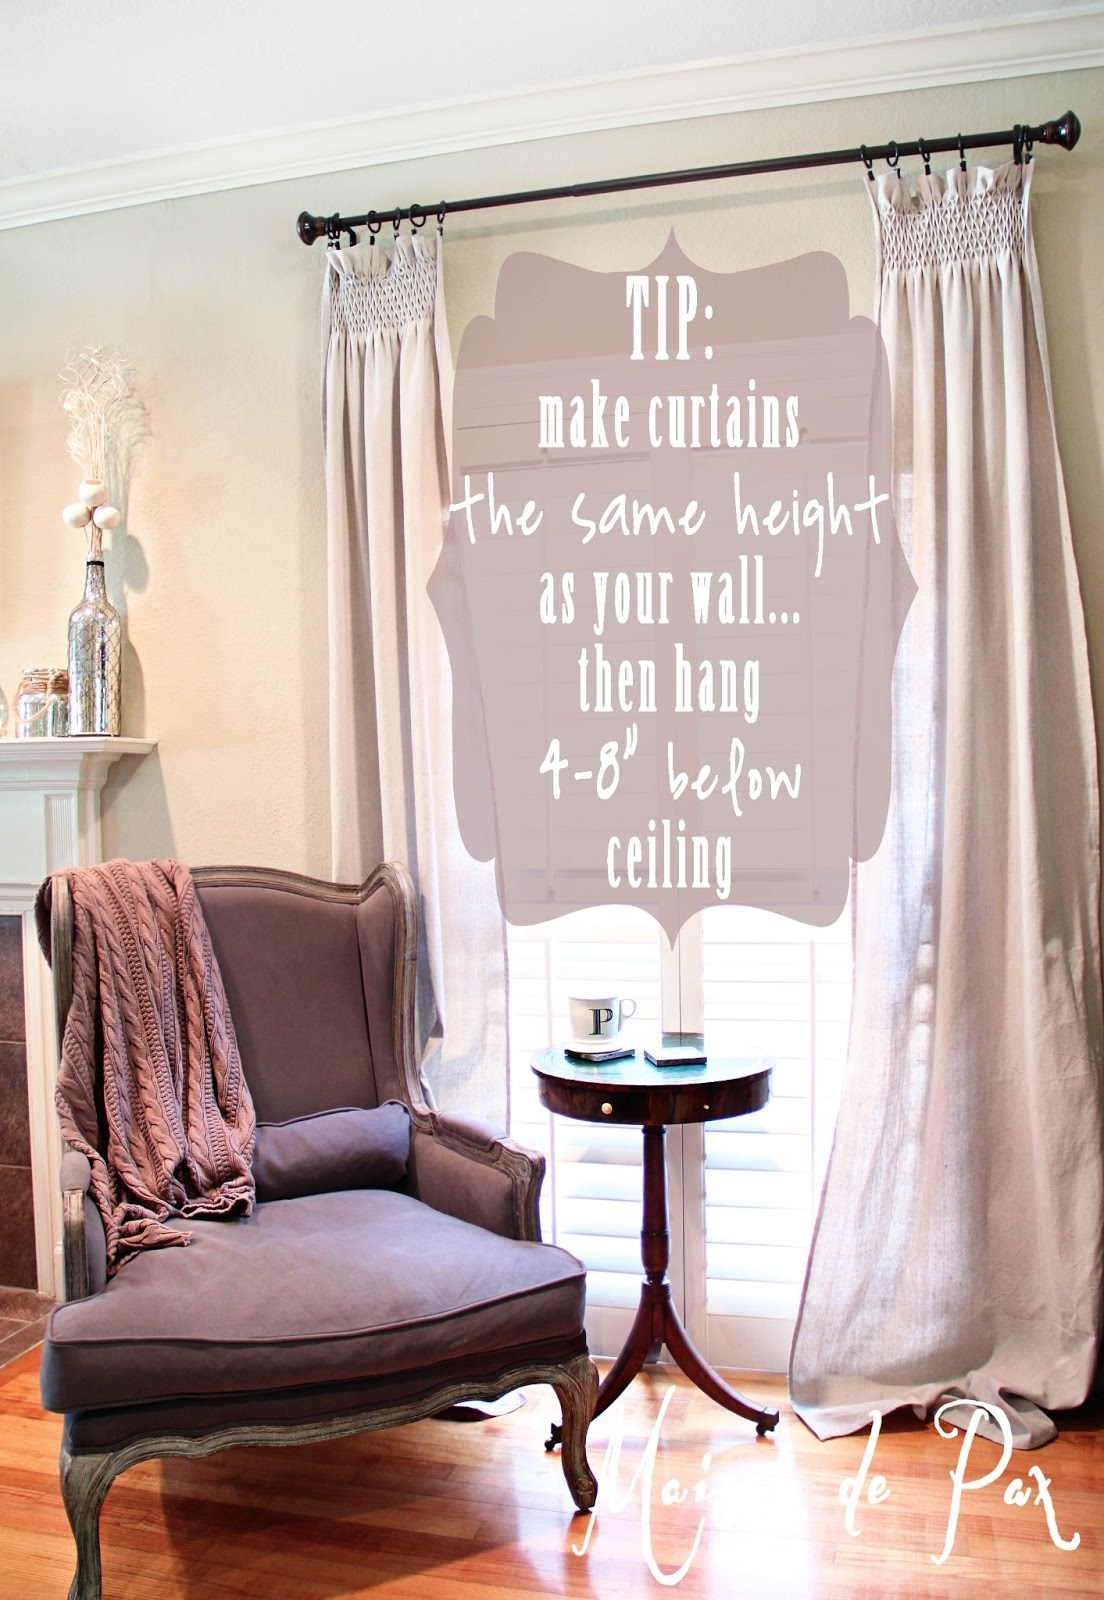 Diy Smocked Curtains Maison De Pax With Regard To 8 Ft Drop Curtains (Image 9 of 15)